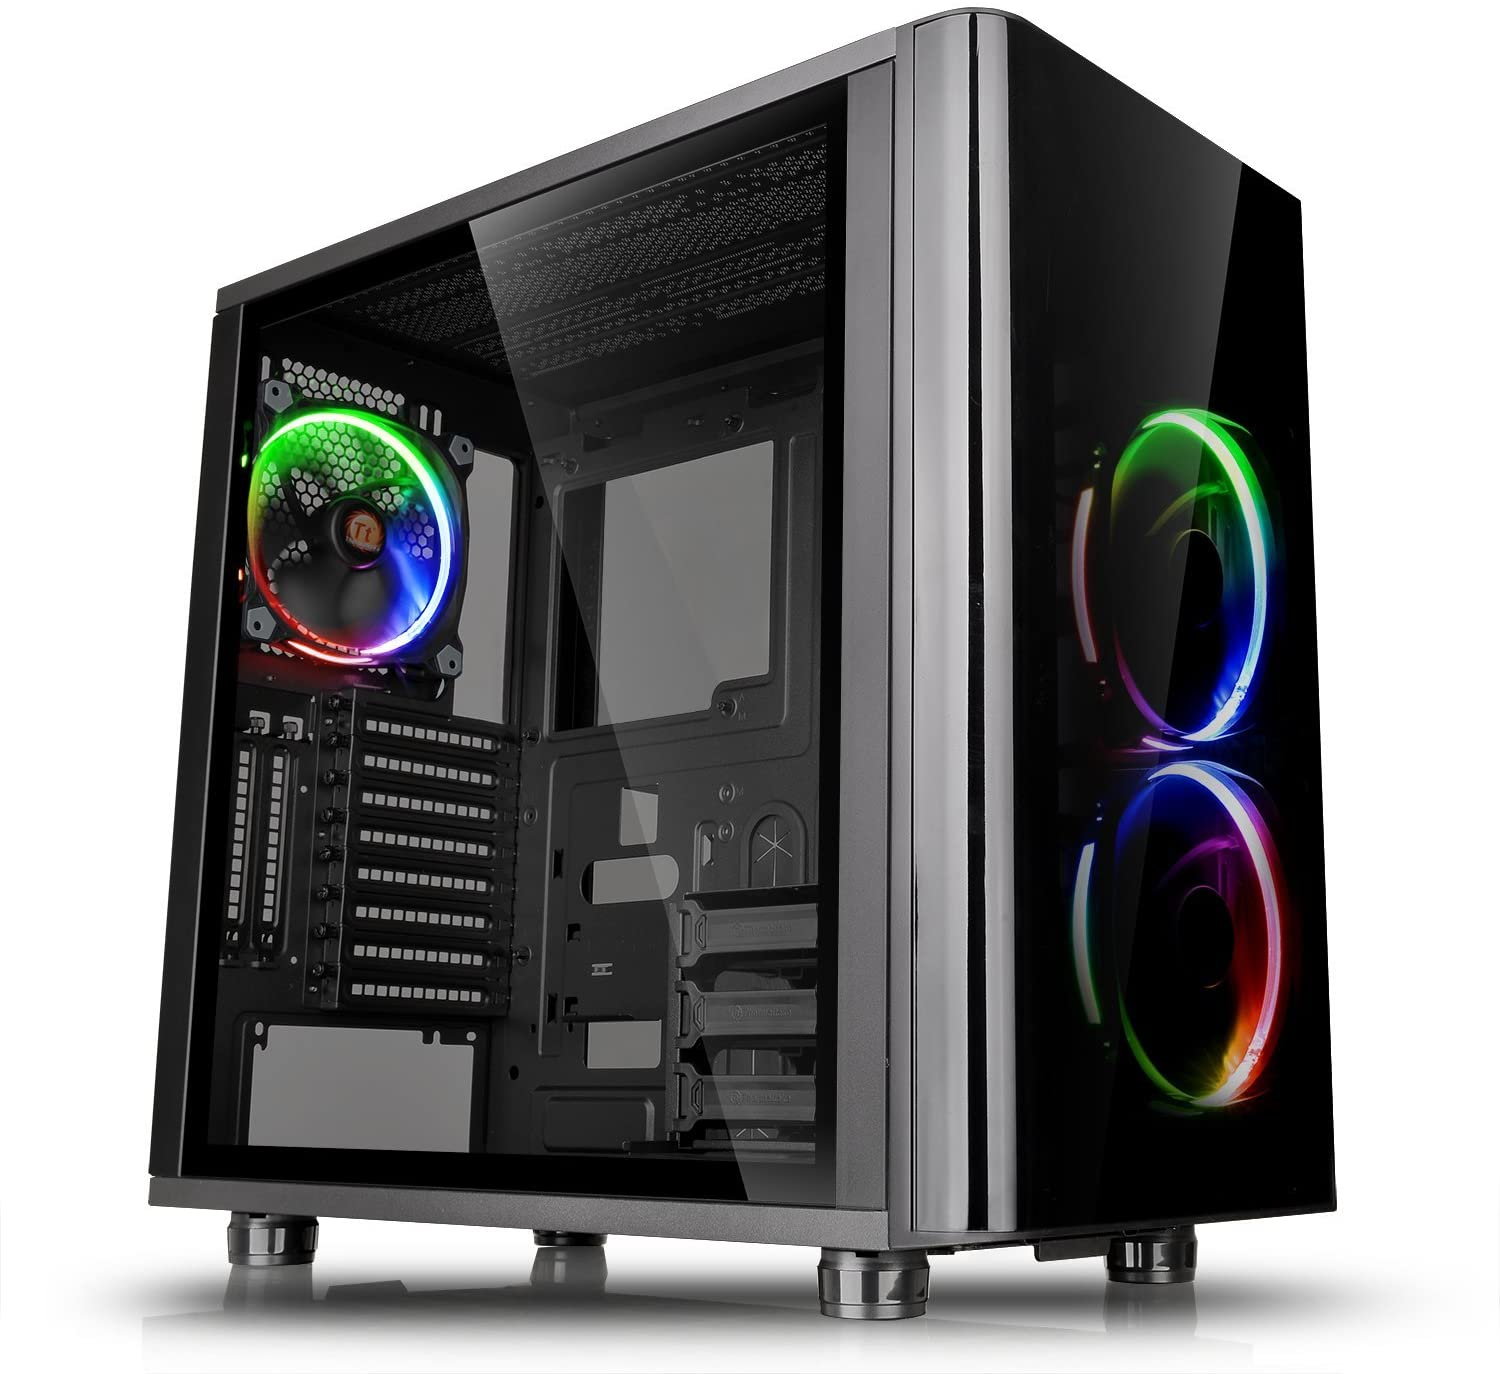 Thermaltake View 31 RGB Dual Tempered Glass SPCC ATX Mid Tower Gaming Computer Case Chassis, 3 RGB LED Ring Fans Pre-Installed CA-1H8-00M1WN-01